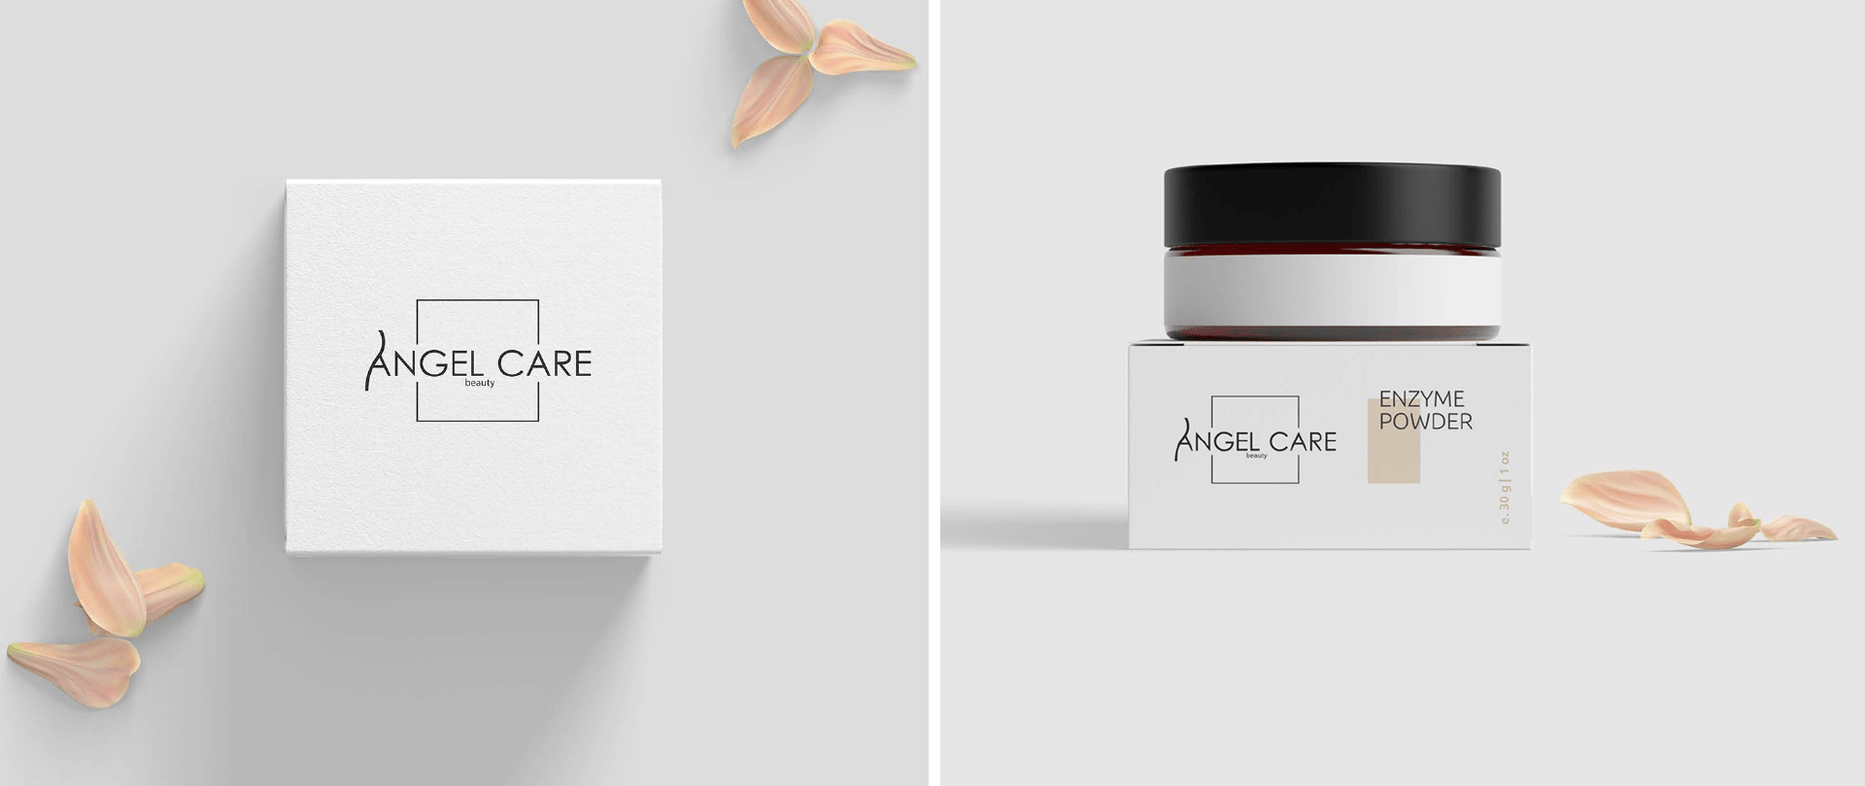 Case: logo, corporate identity, promotional products for Angel Care — Rubarb - Image - 12